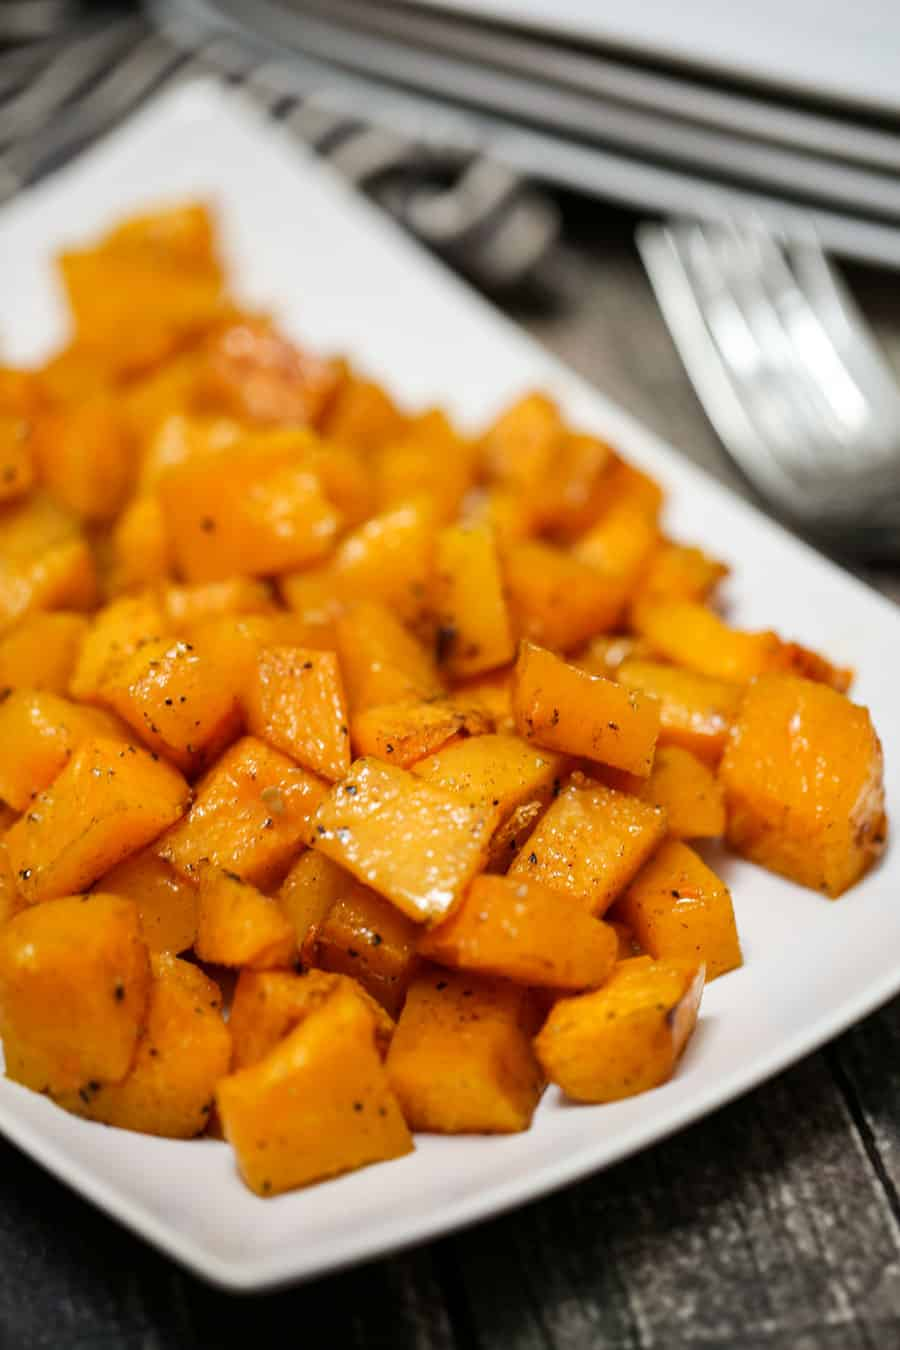 Vitamin packed Roasted Maple Cinnamon Butternut Squash is simple to bake - simply spread butternut squash chunk cubes on a baking sheet which were tossed in olive oil, maple syrup, cinnamon, salt and pepper. The result is a sweet caramelized roasted root vegetable that is a delicious side dish.